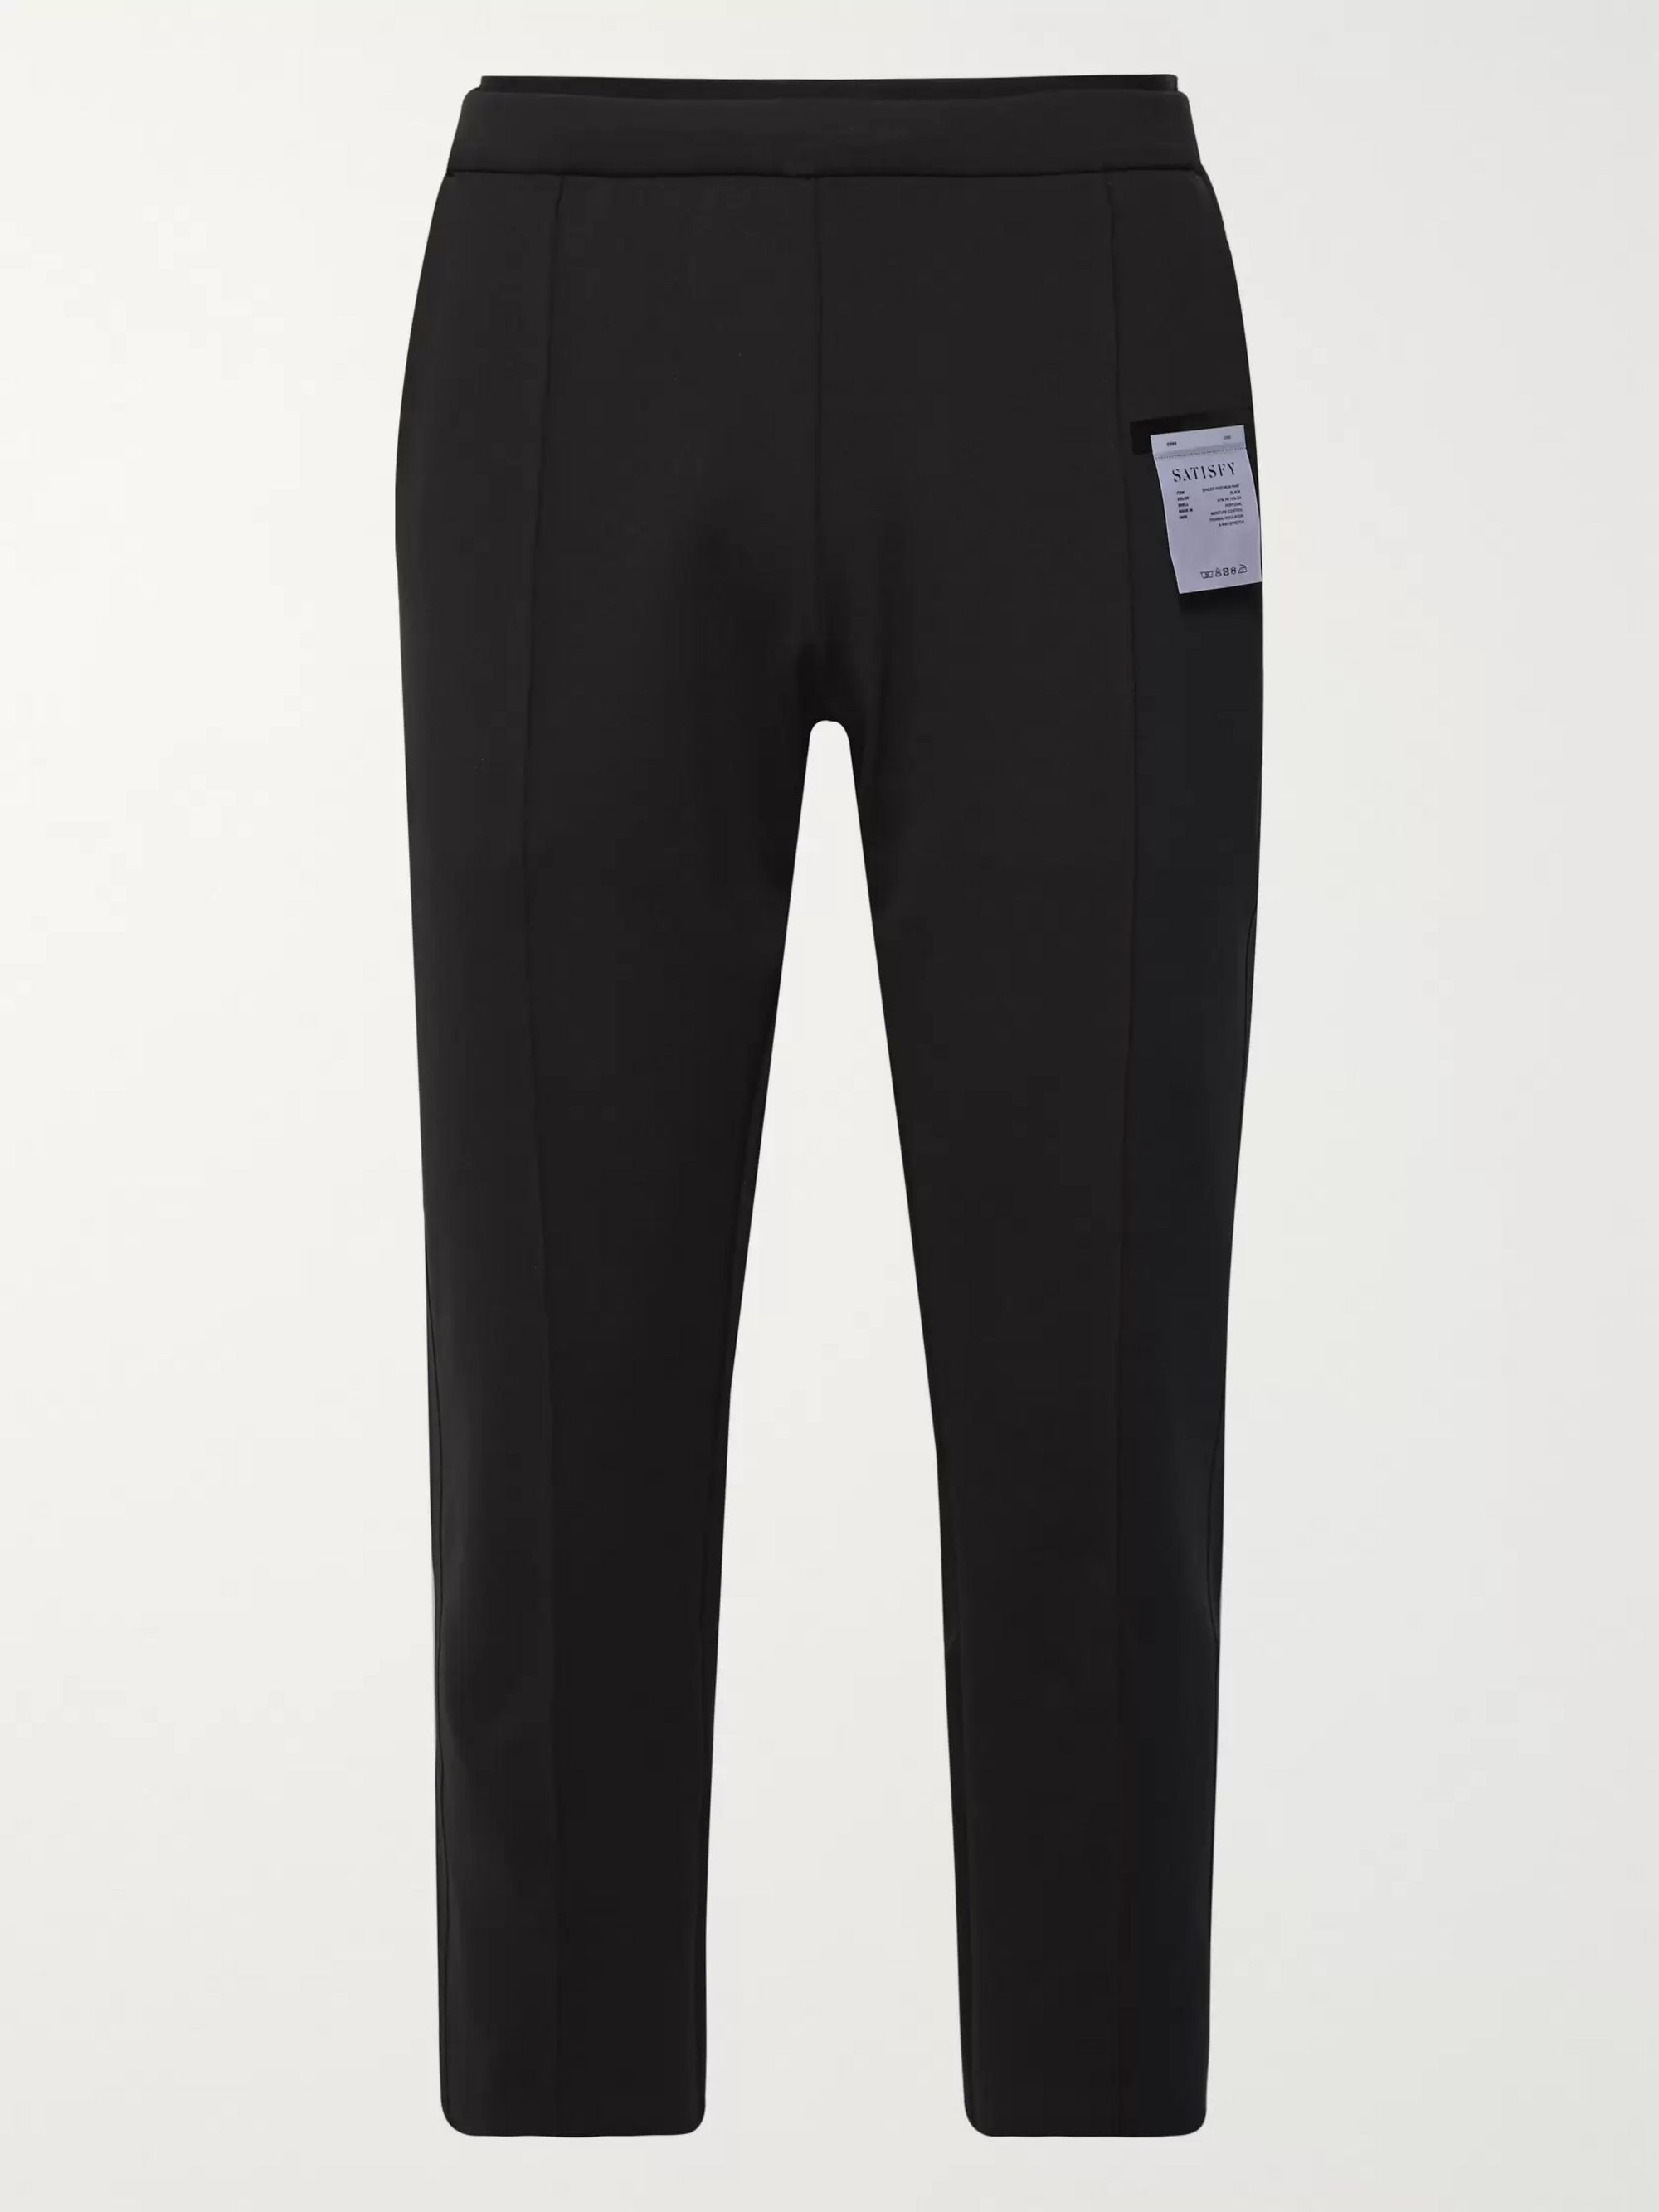 Satisfy Post-Run Tecnospacer Drawstring Trousers